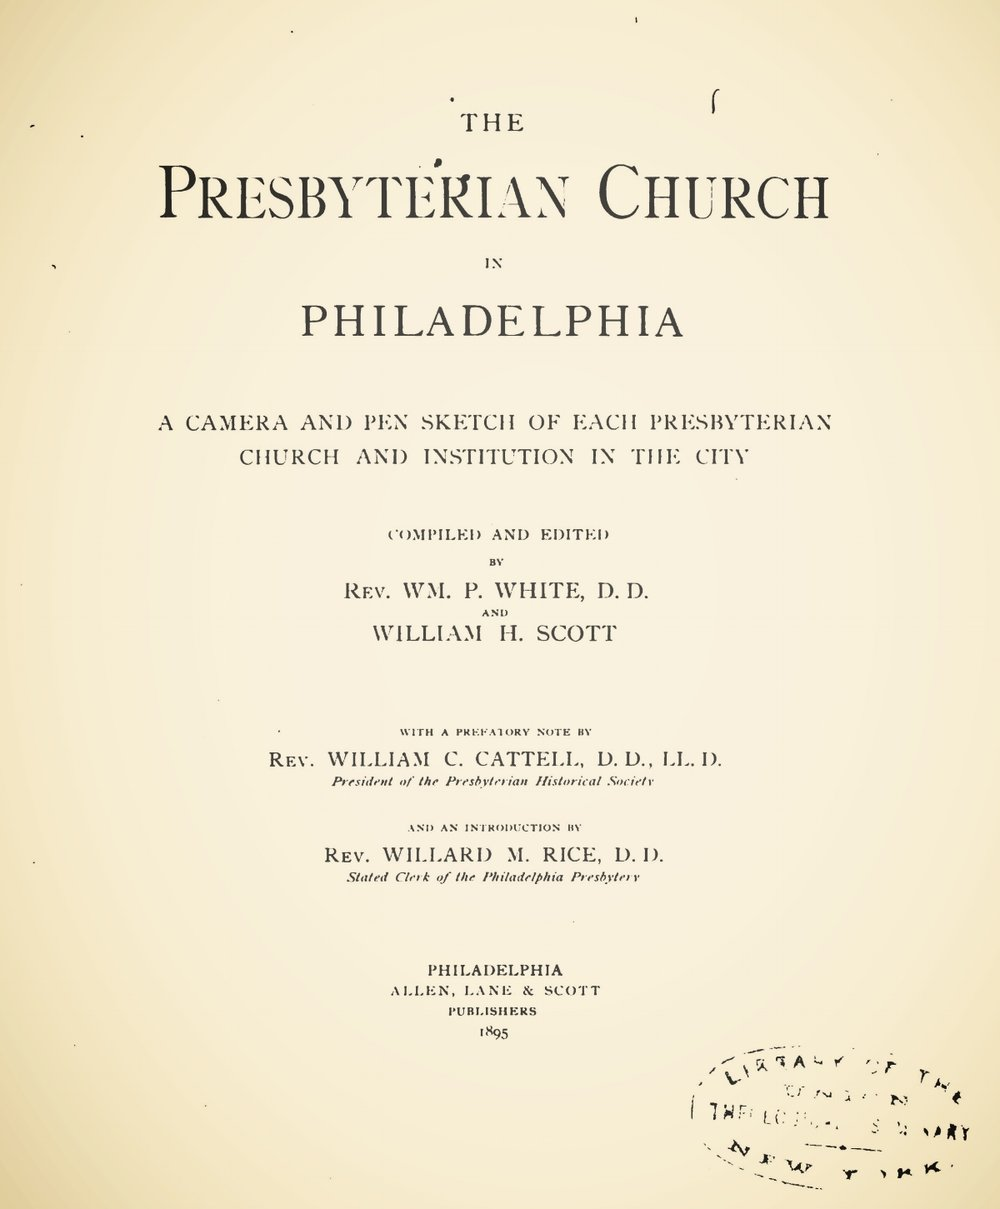 White, William Prescott, The Presbyterian Church in Philadelphia Title Page.jpg